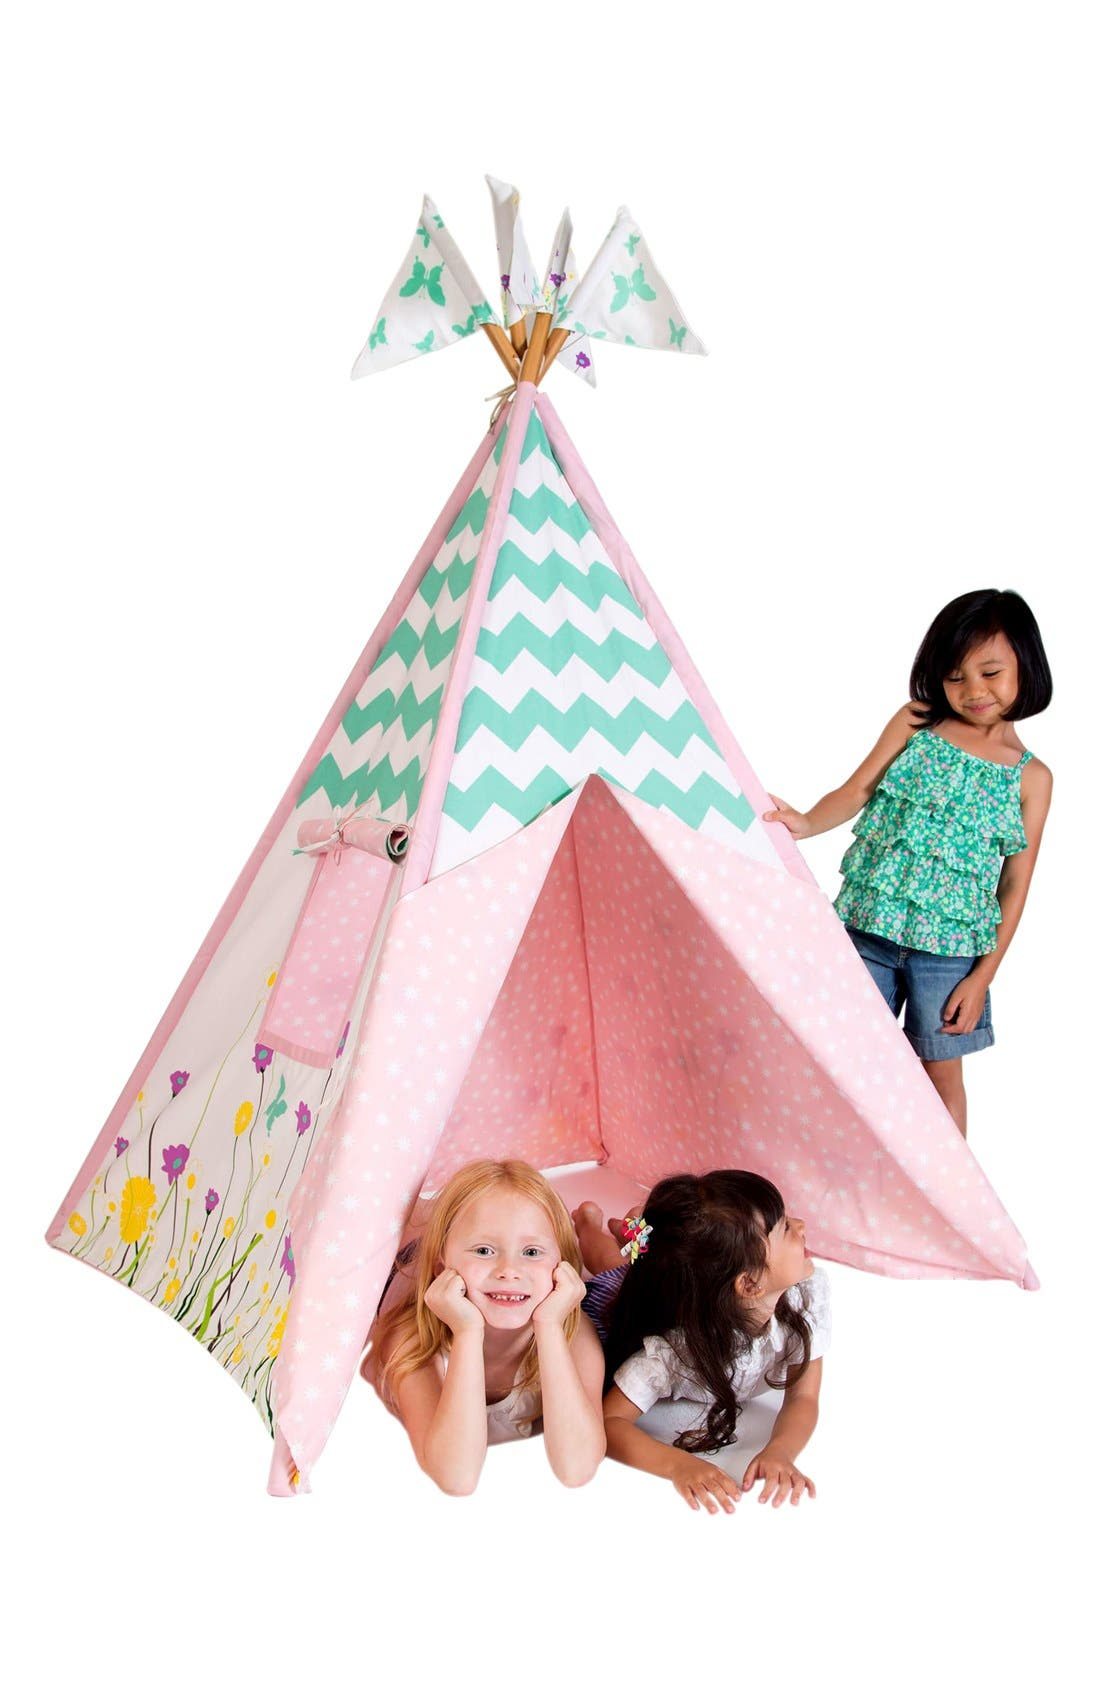 'Wildflowers' Cotton Canvas Teepee,                             Alternate thumbnail 4, color,                             BEIGE